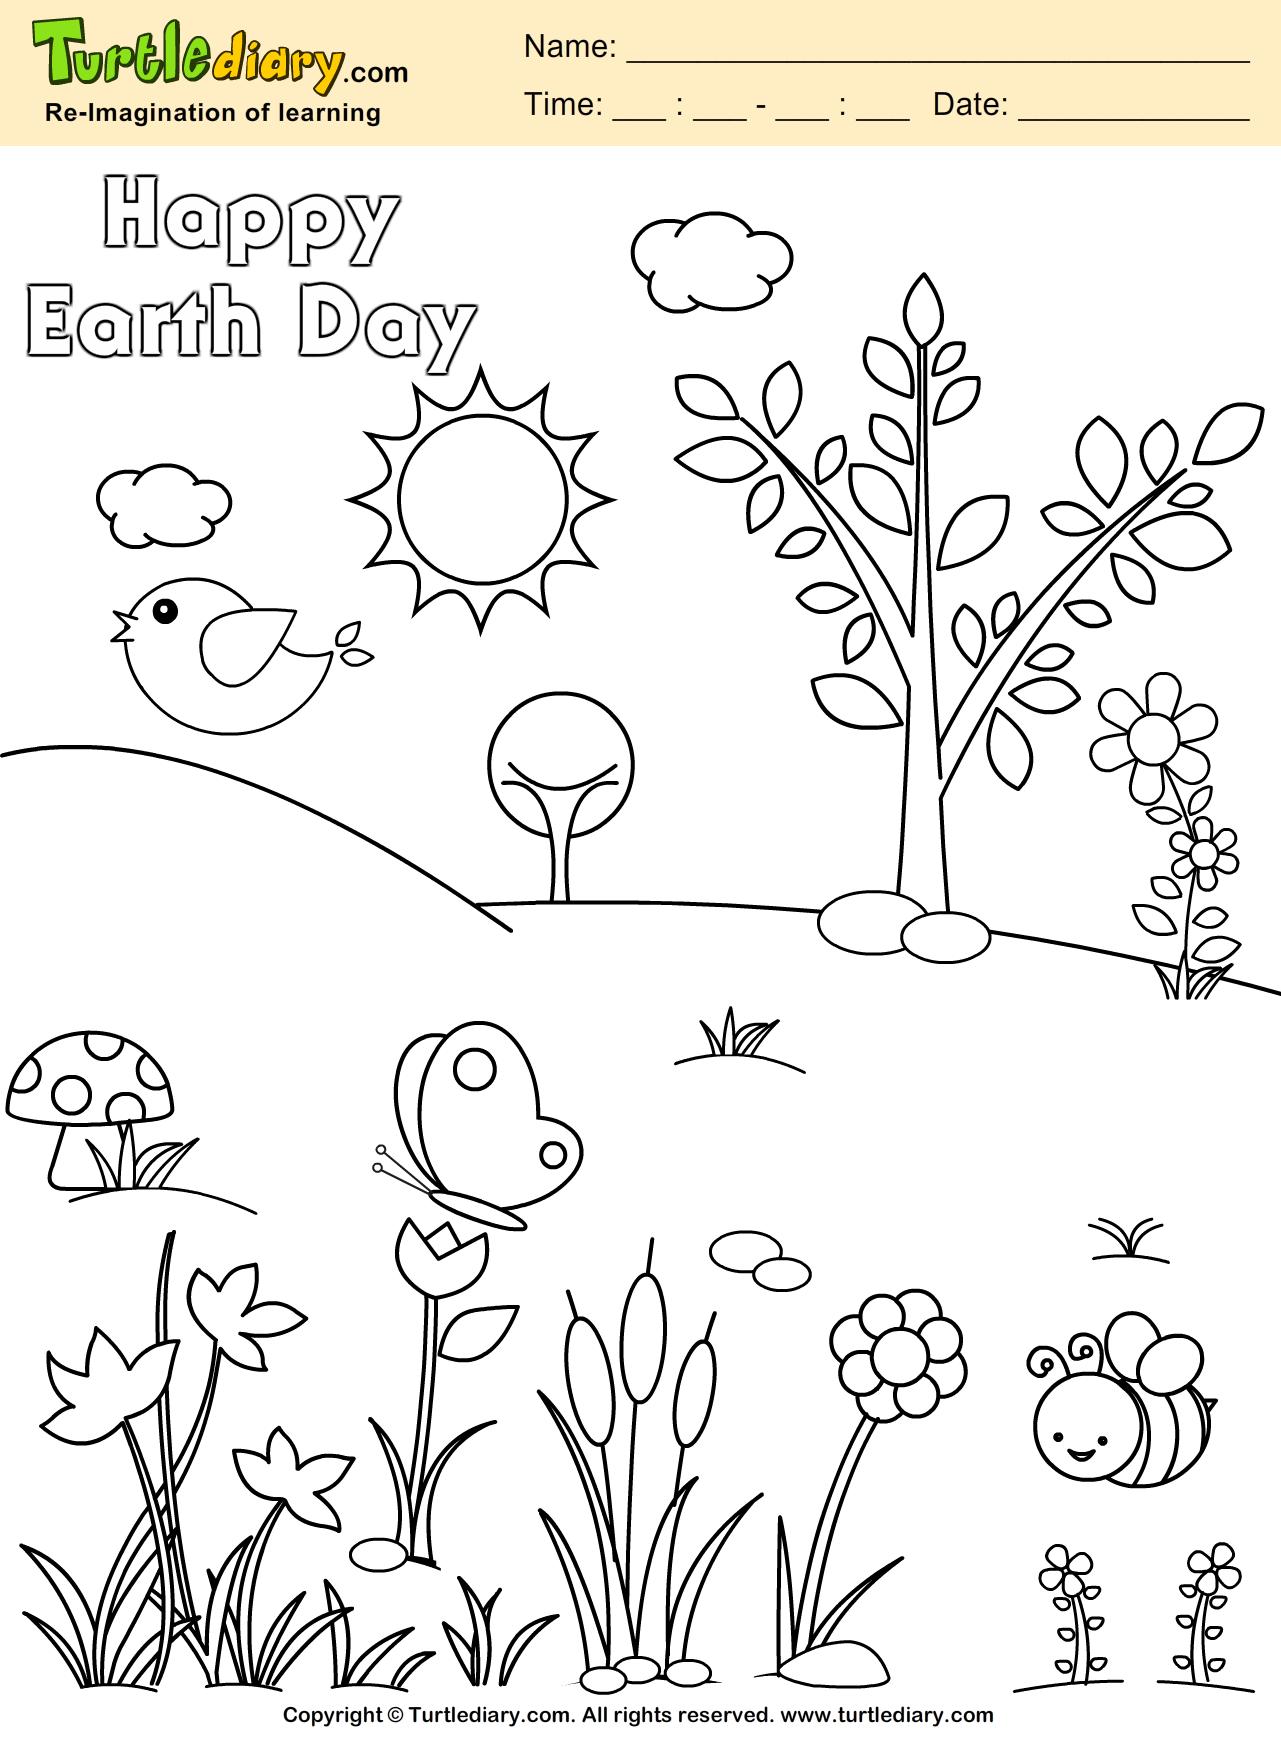 Happy Earth Day Planet Earth Coloring Page Kids Crafts Coloring